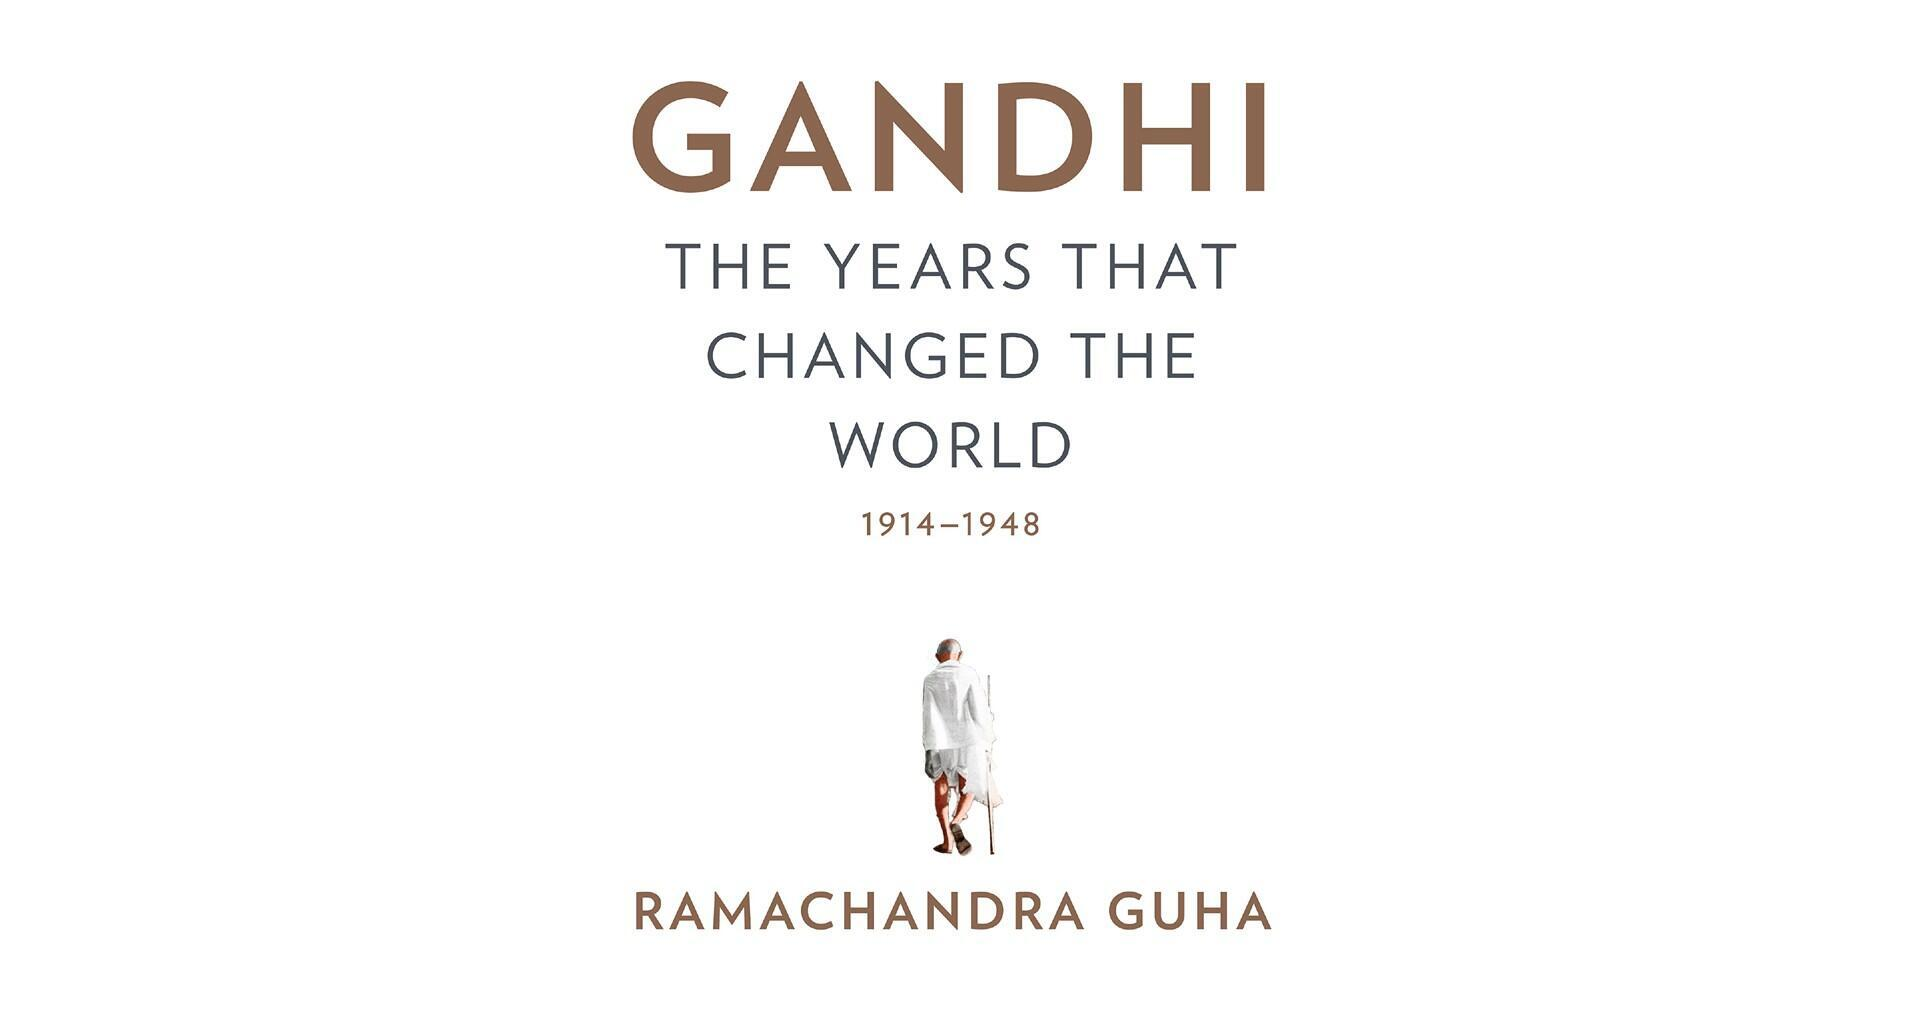 Couverture livre Ramachandra Guha «Gandhi—: The Years That Changed The World»